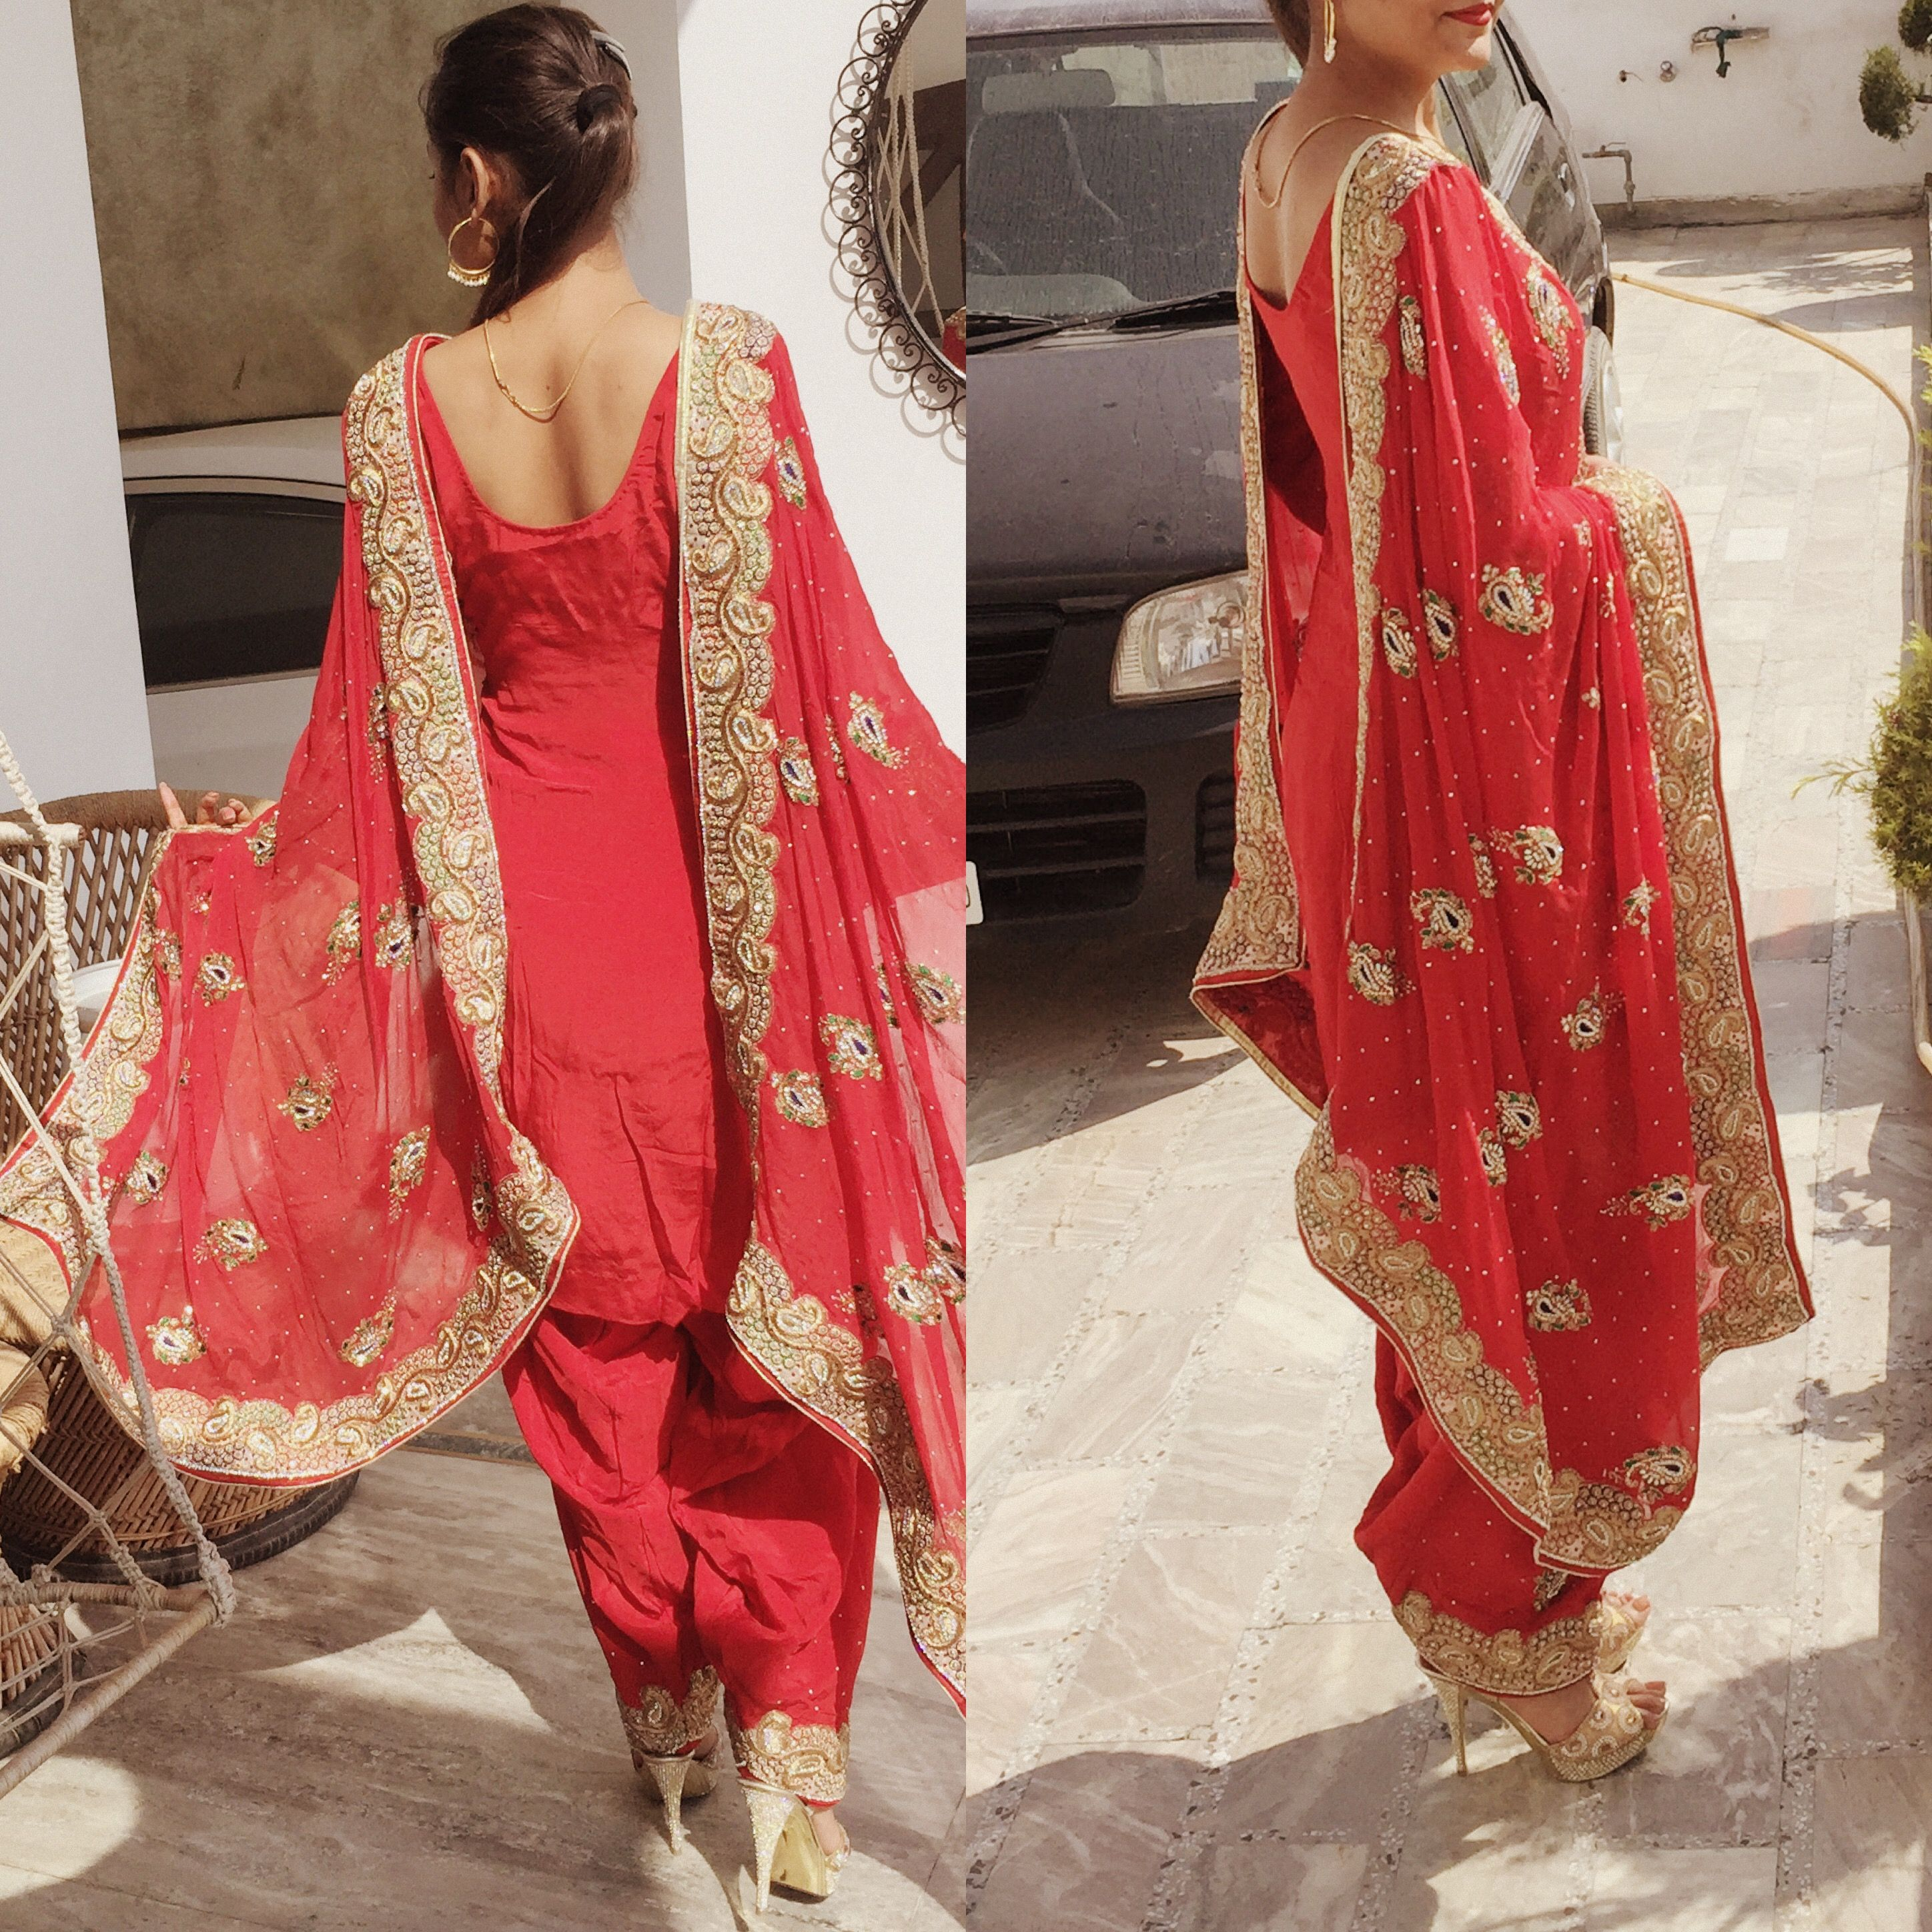 email sajsacouture@gmail.com for this red punjabi suit | Dresses ...